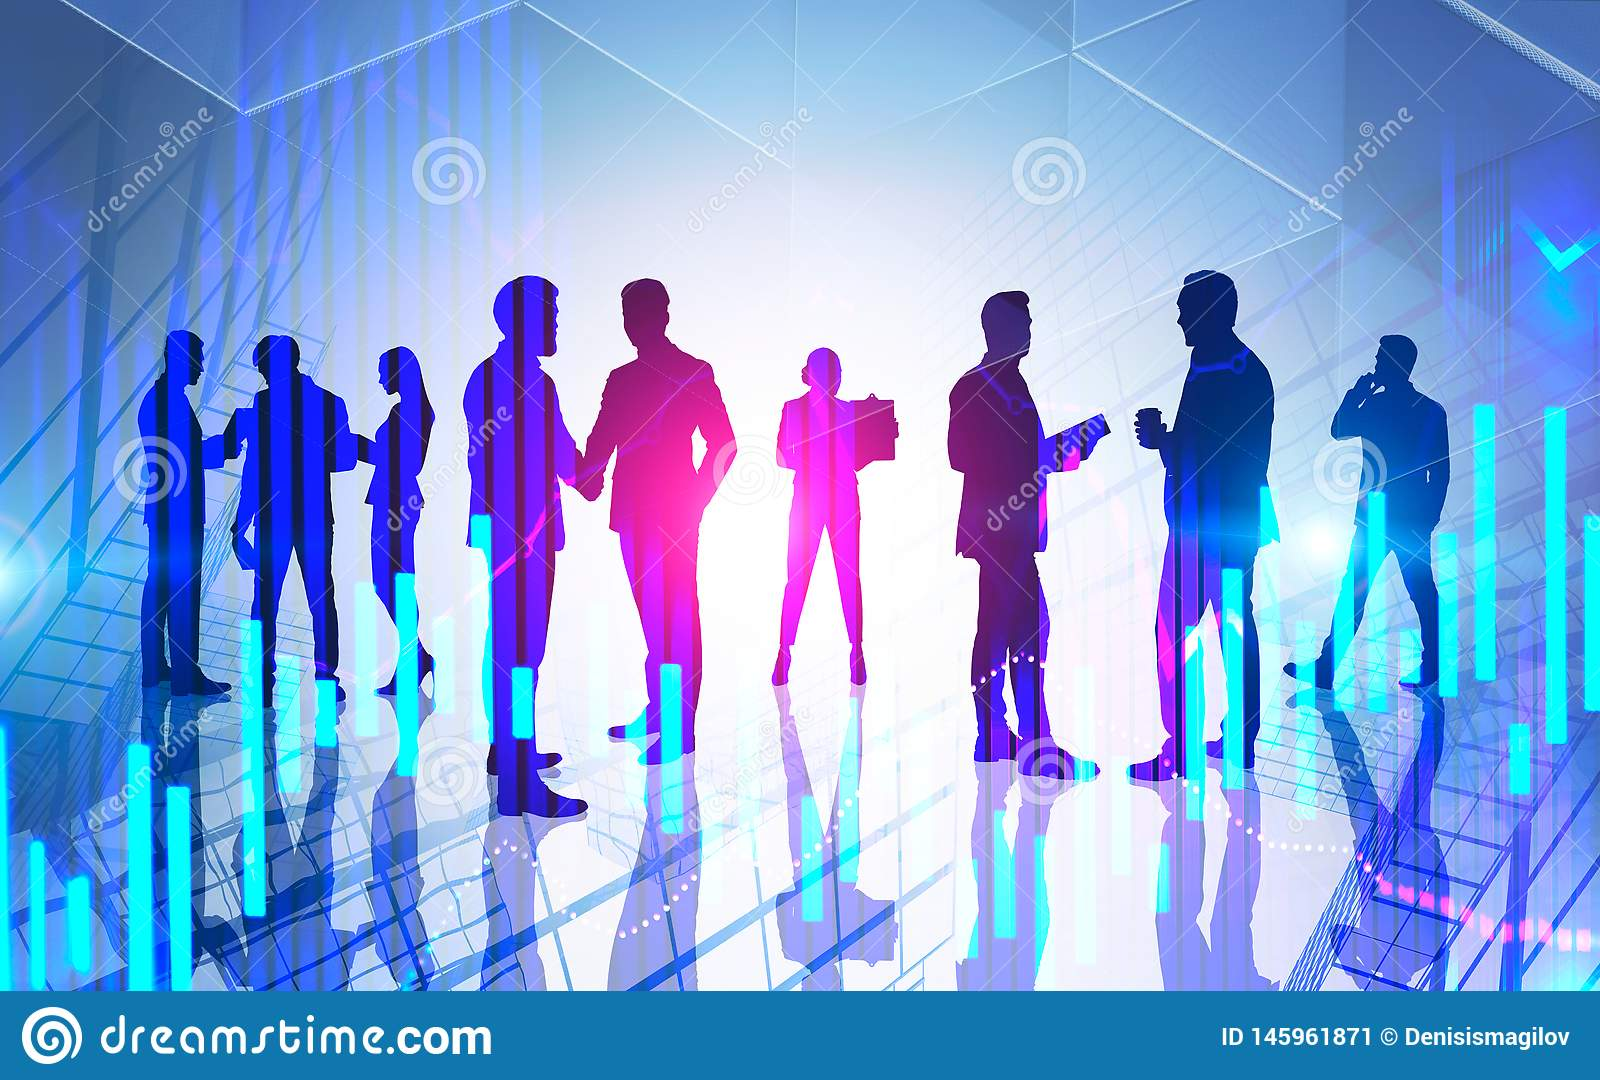 Traders silhouettes, stock market concept